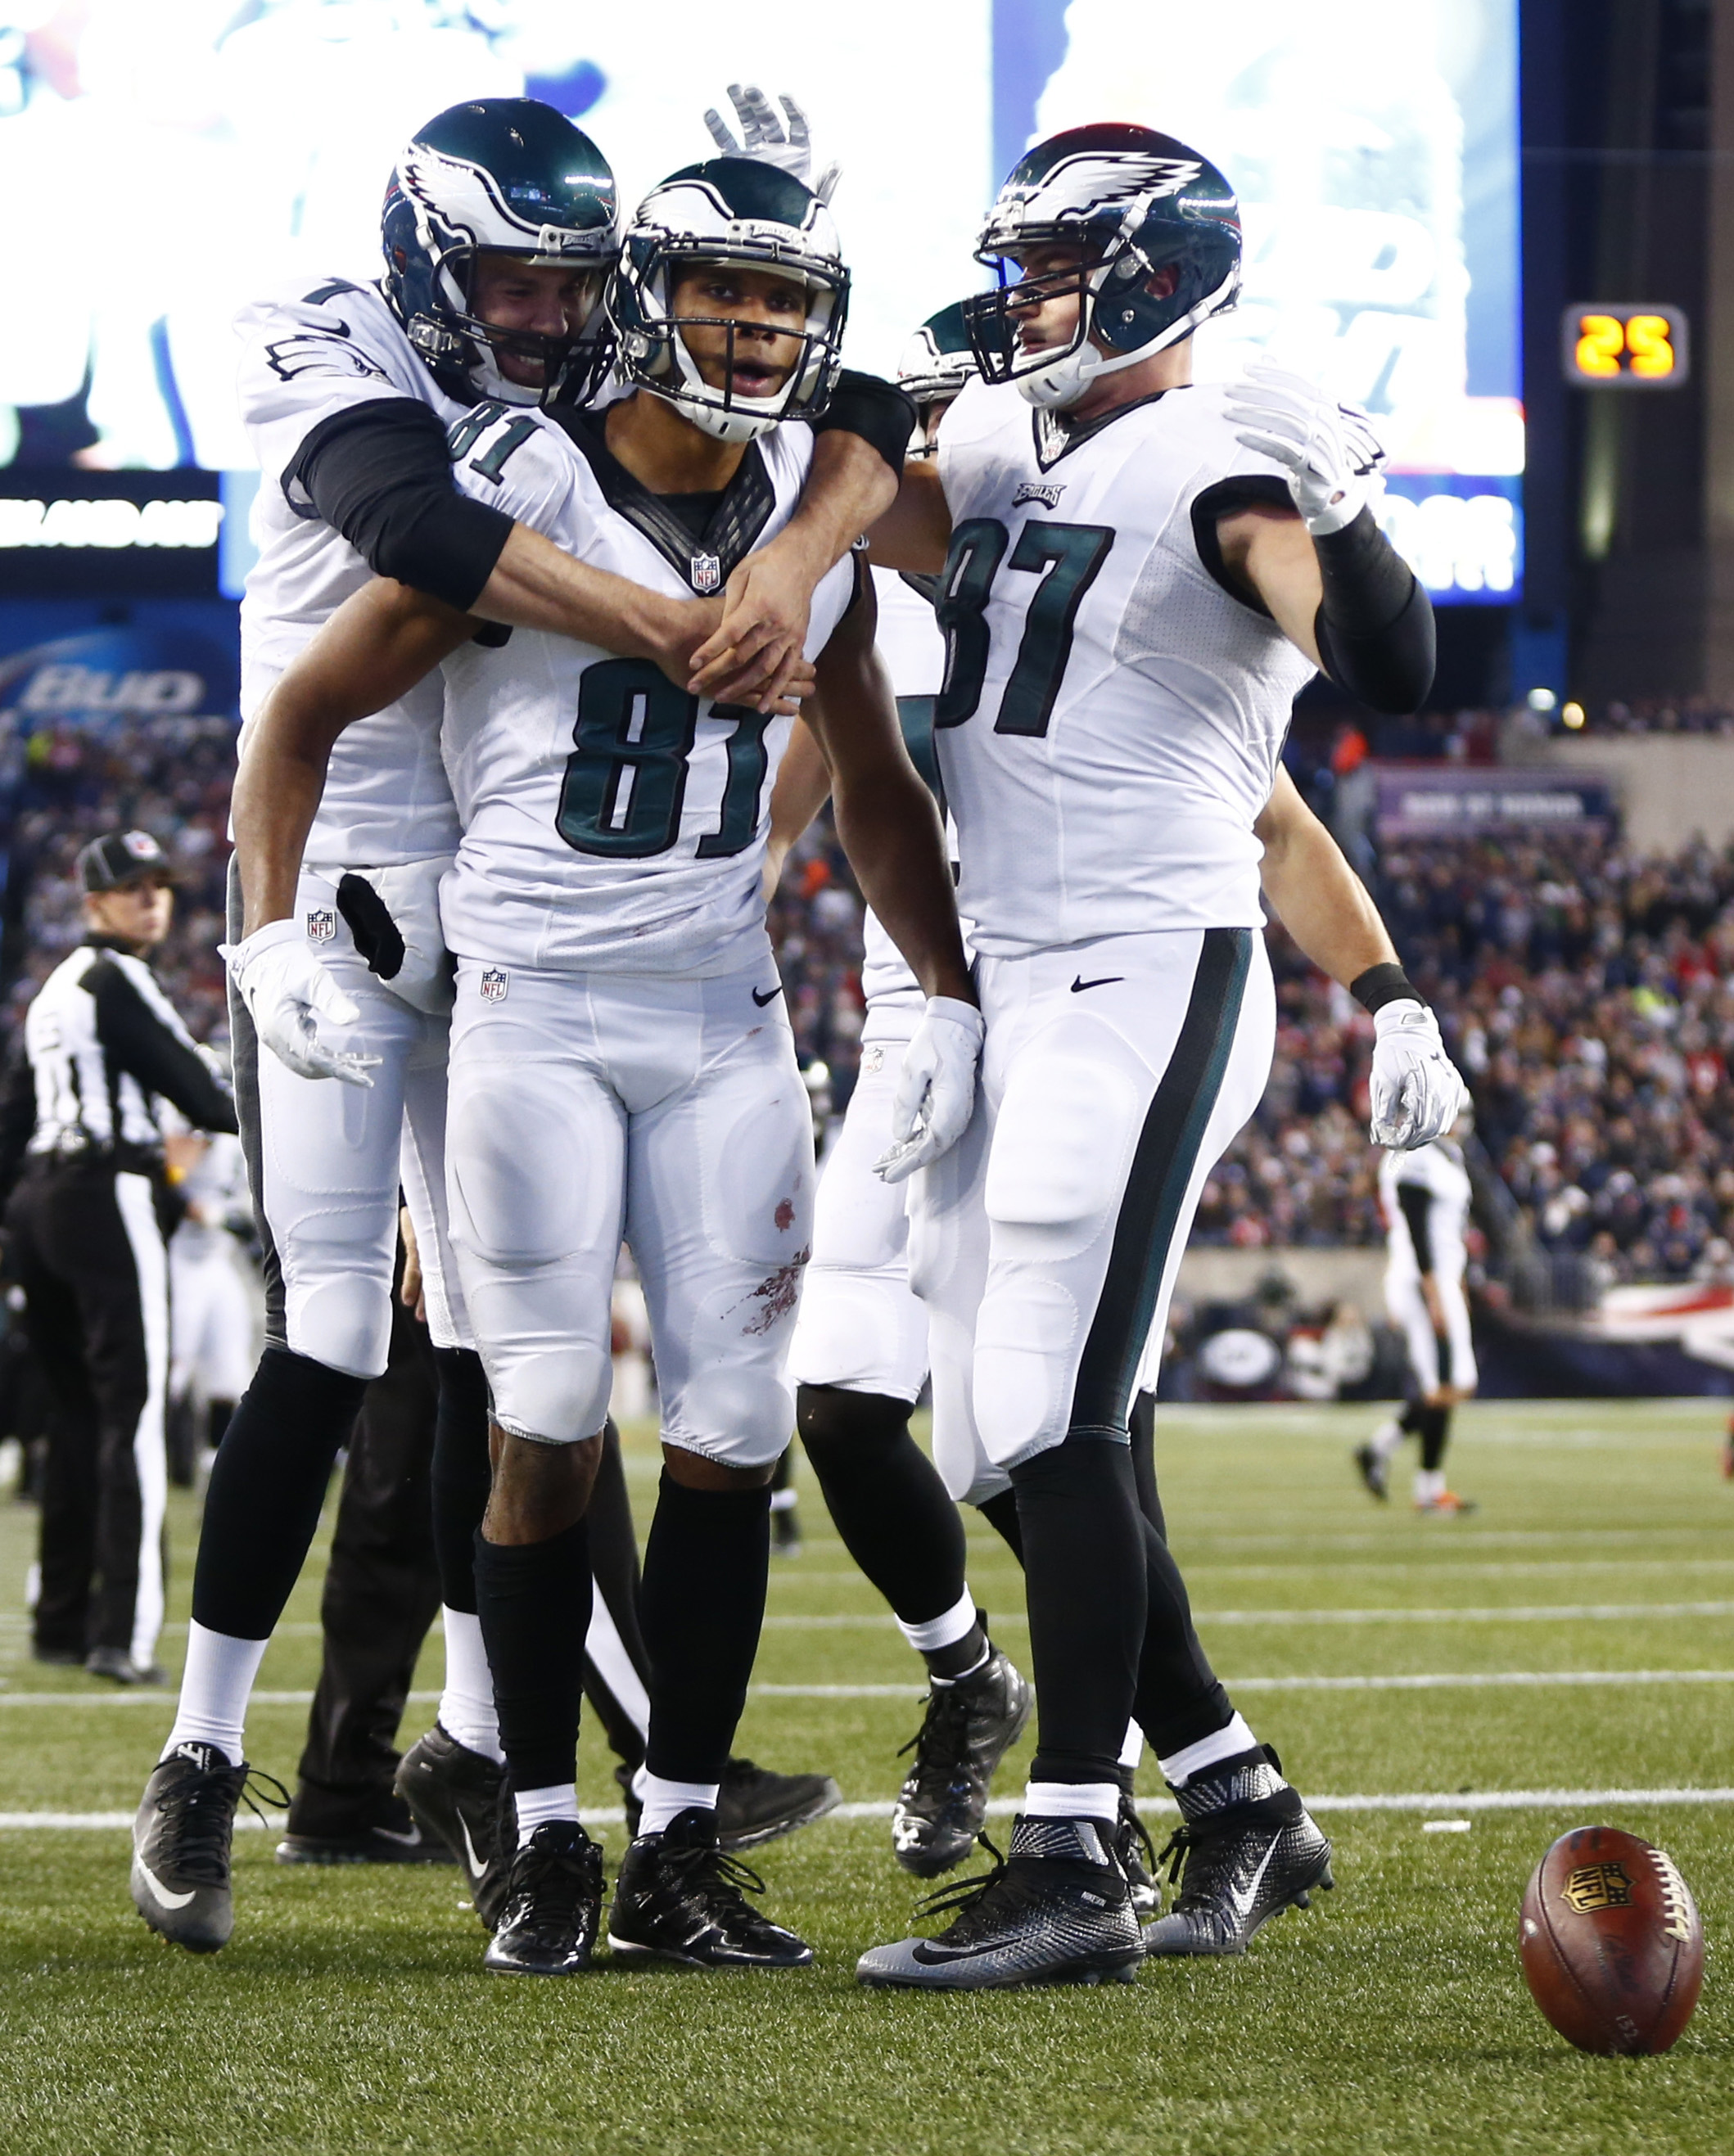 The Eagles pulled the upset of the NFL season last week in beating the Patriots.